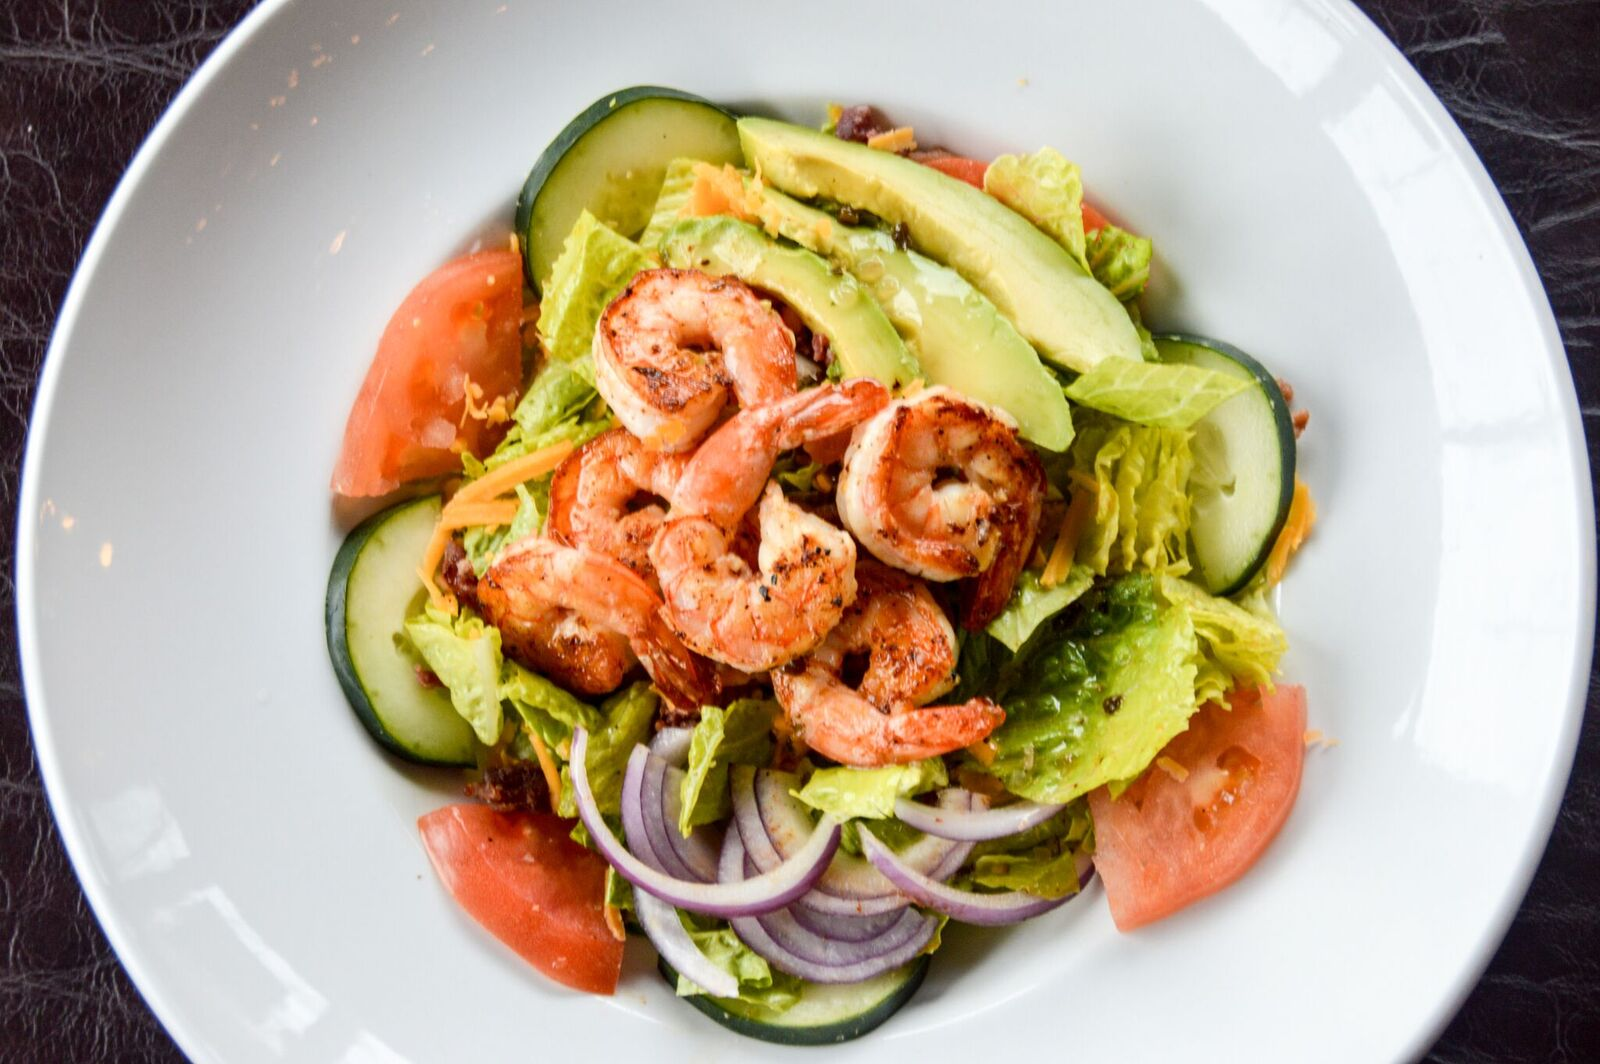 grilled shrimp salad with onions, tomatoes, avocado and cucumbers